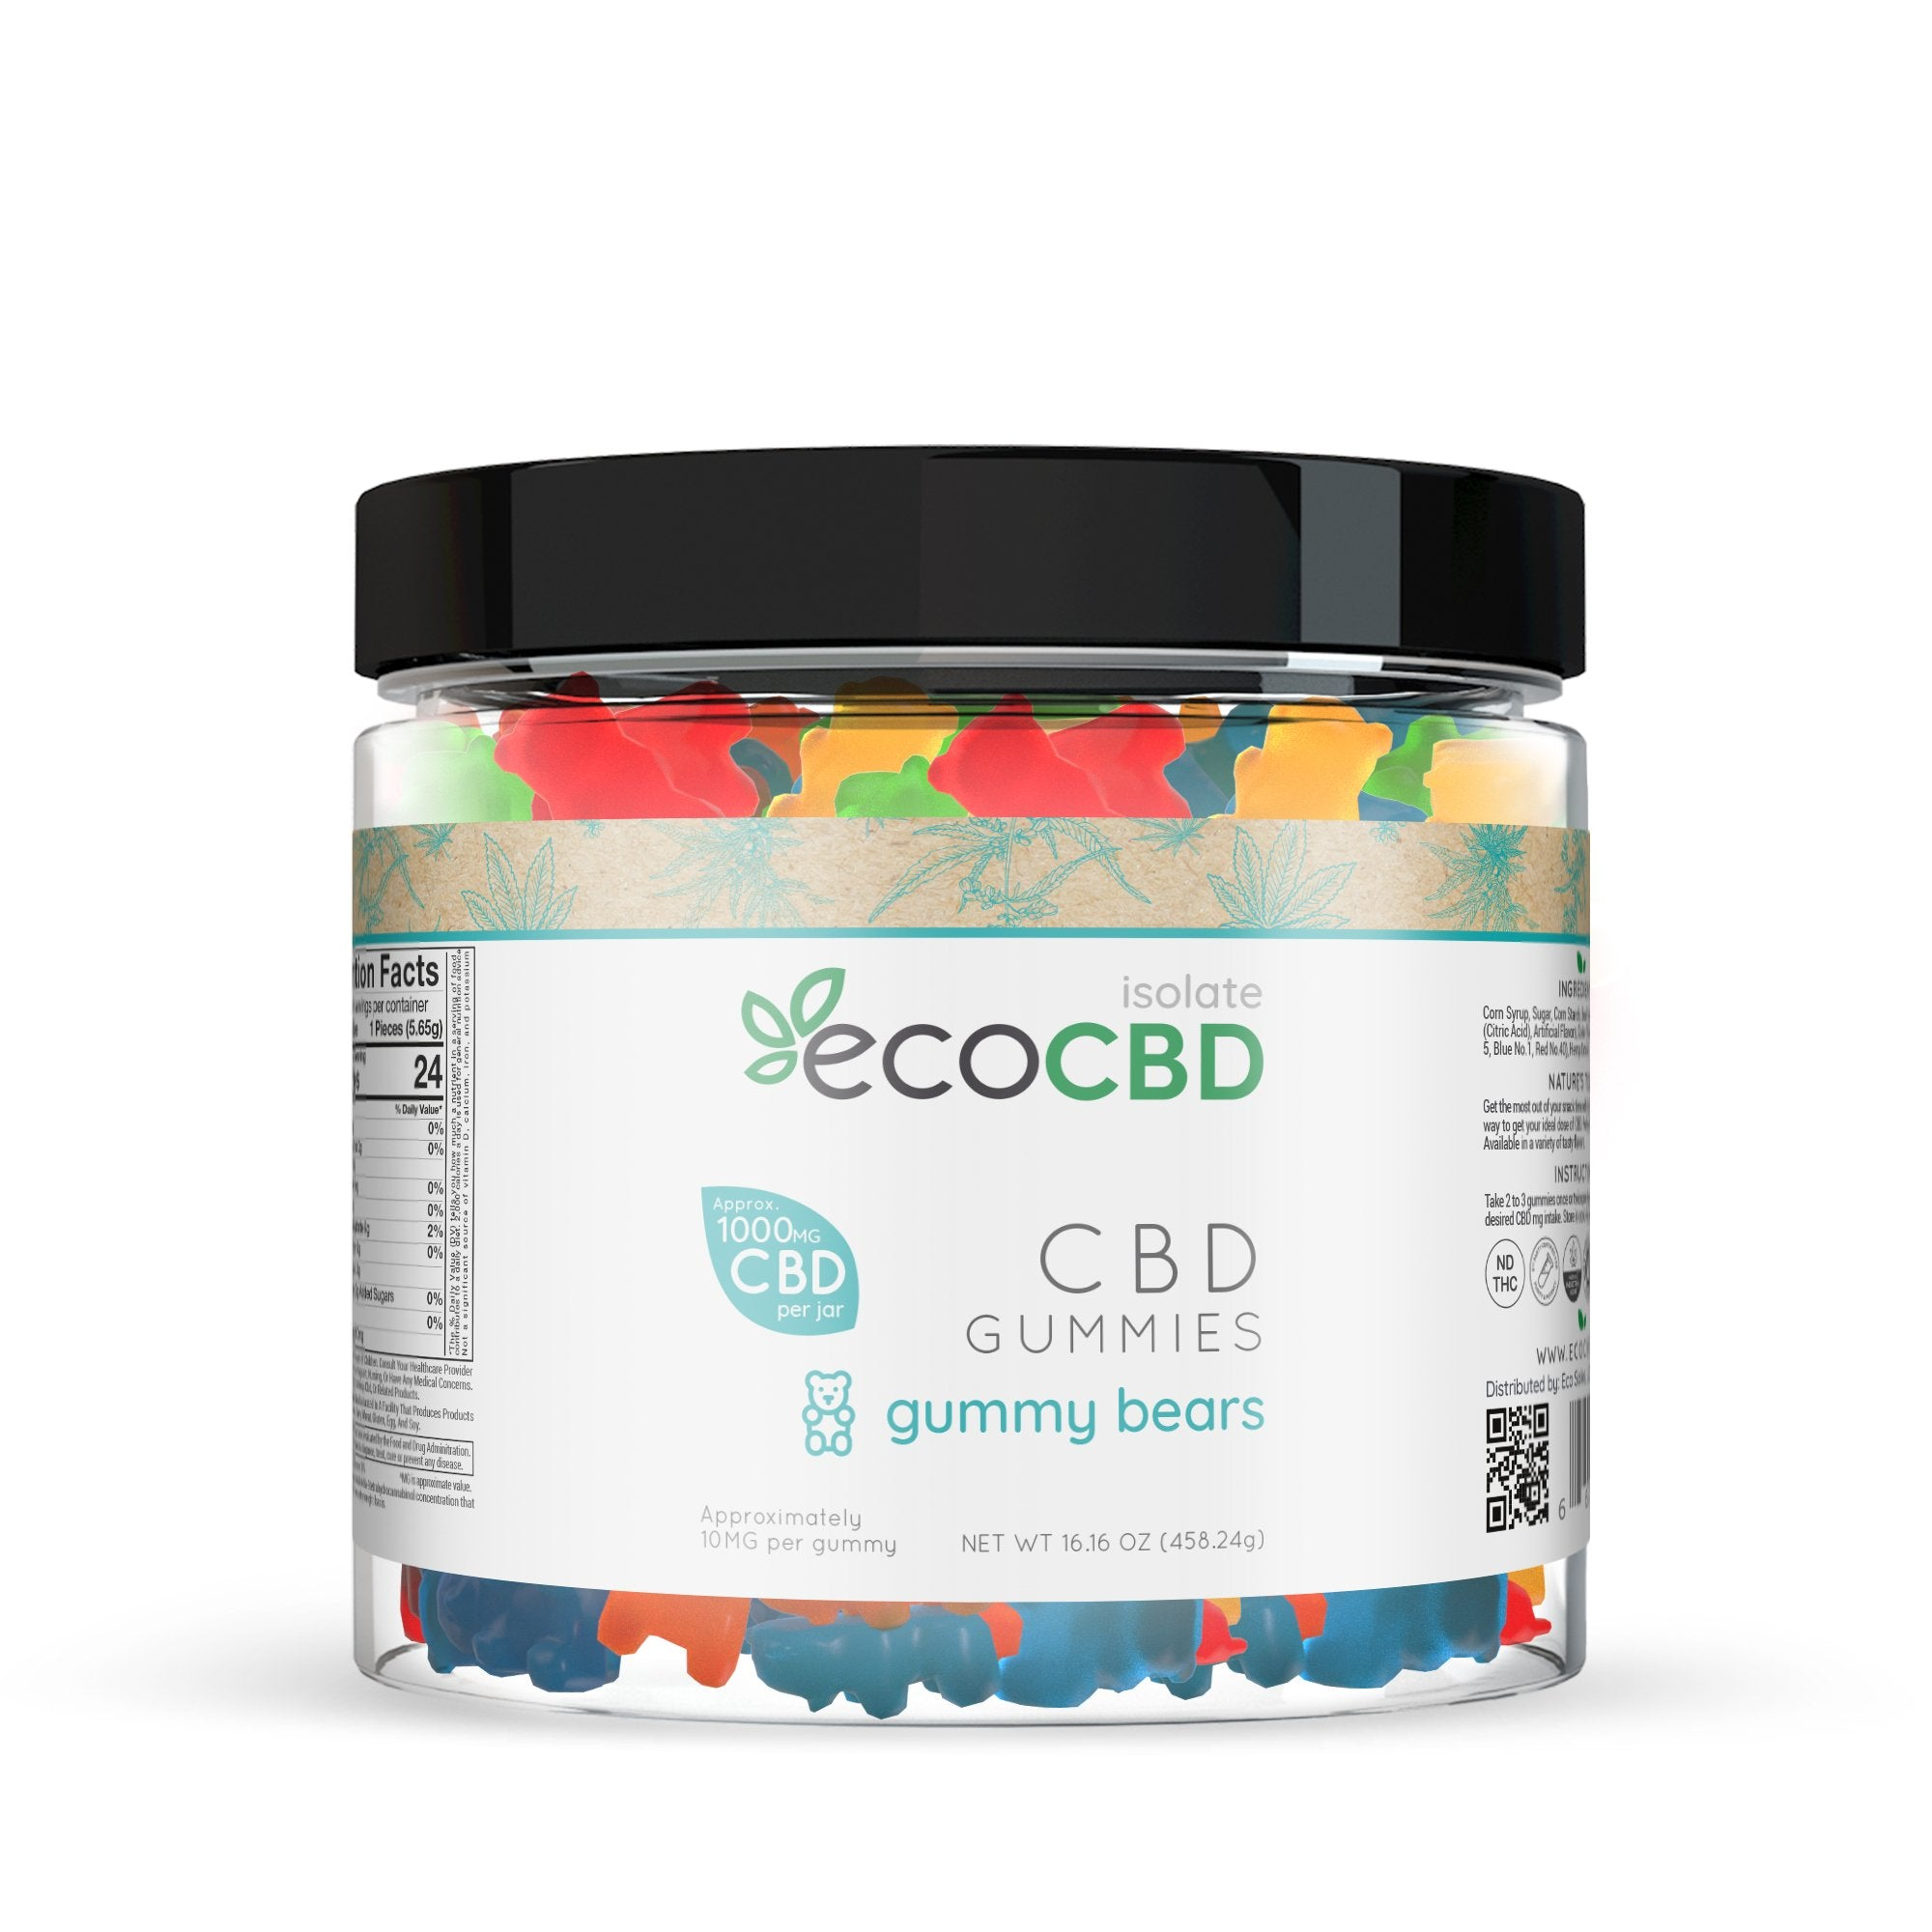 Eco CBD - CBD Isolate Gummy Bears - 1000mg